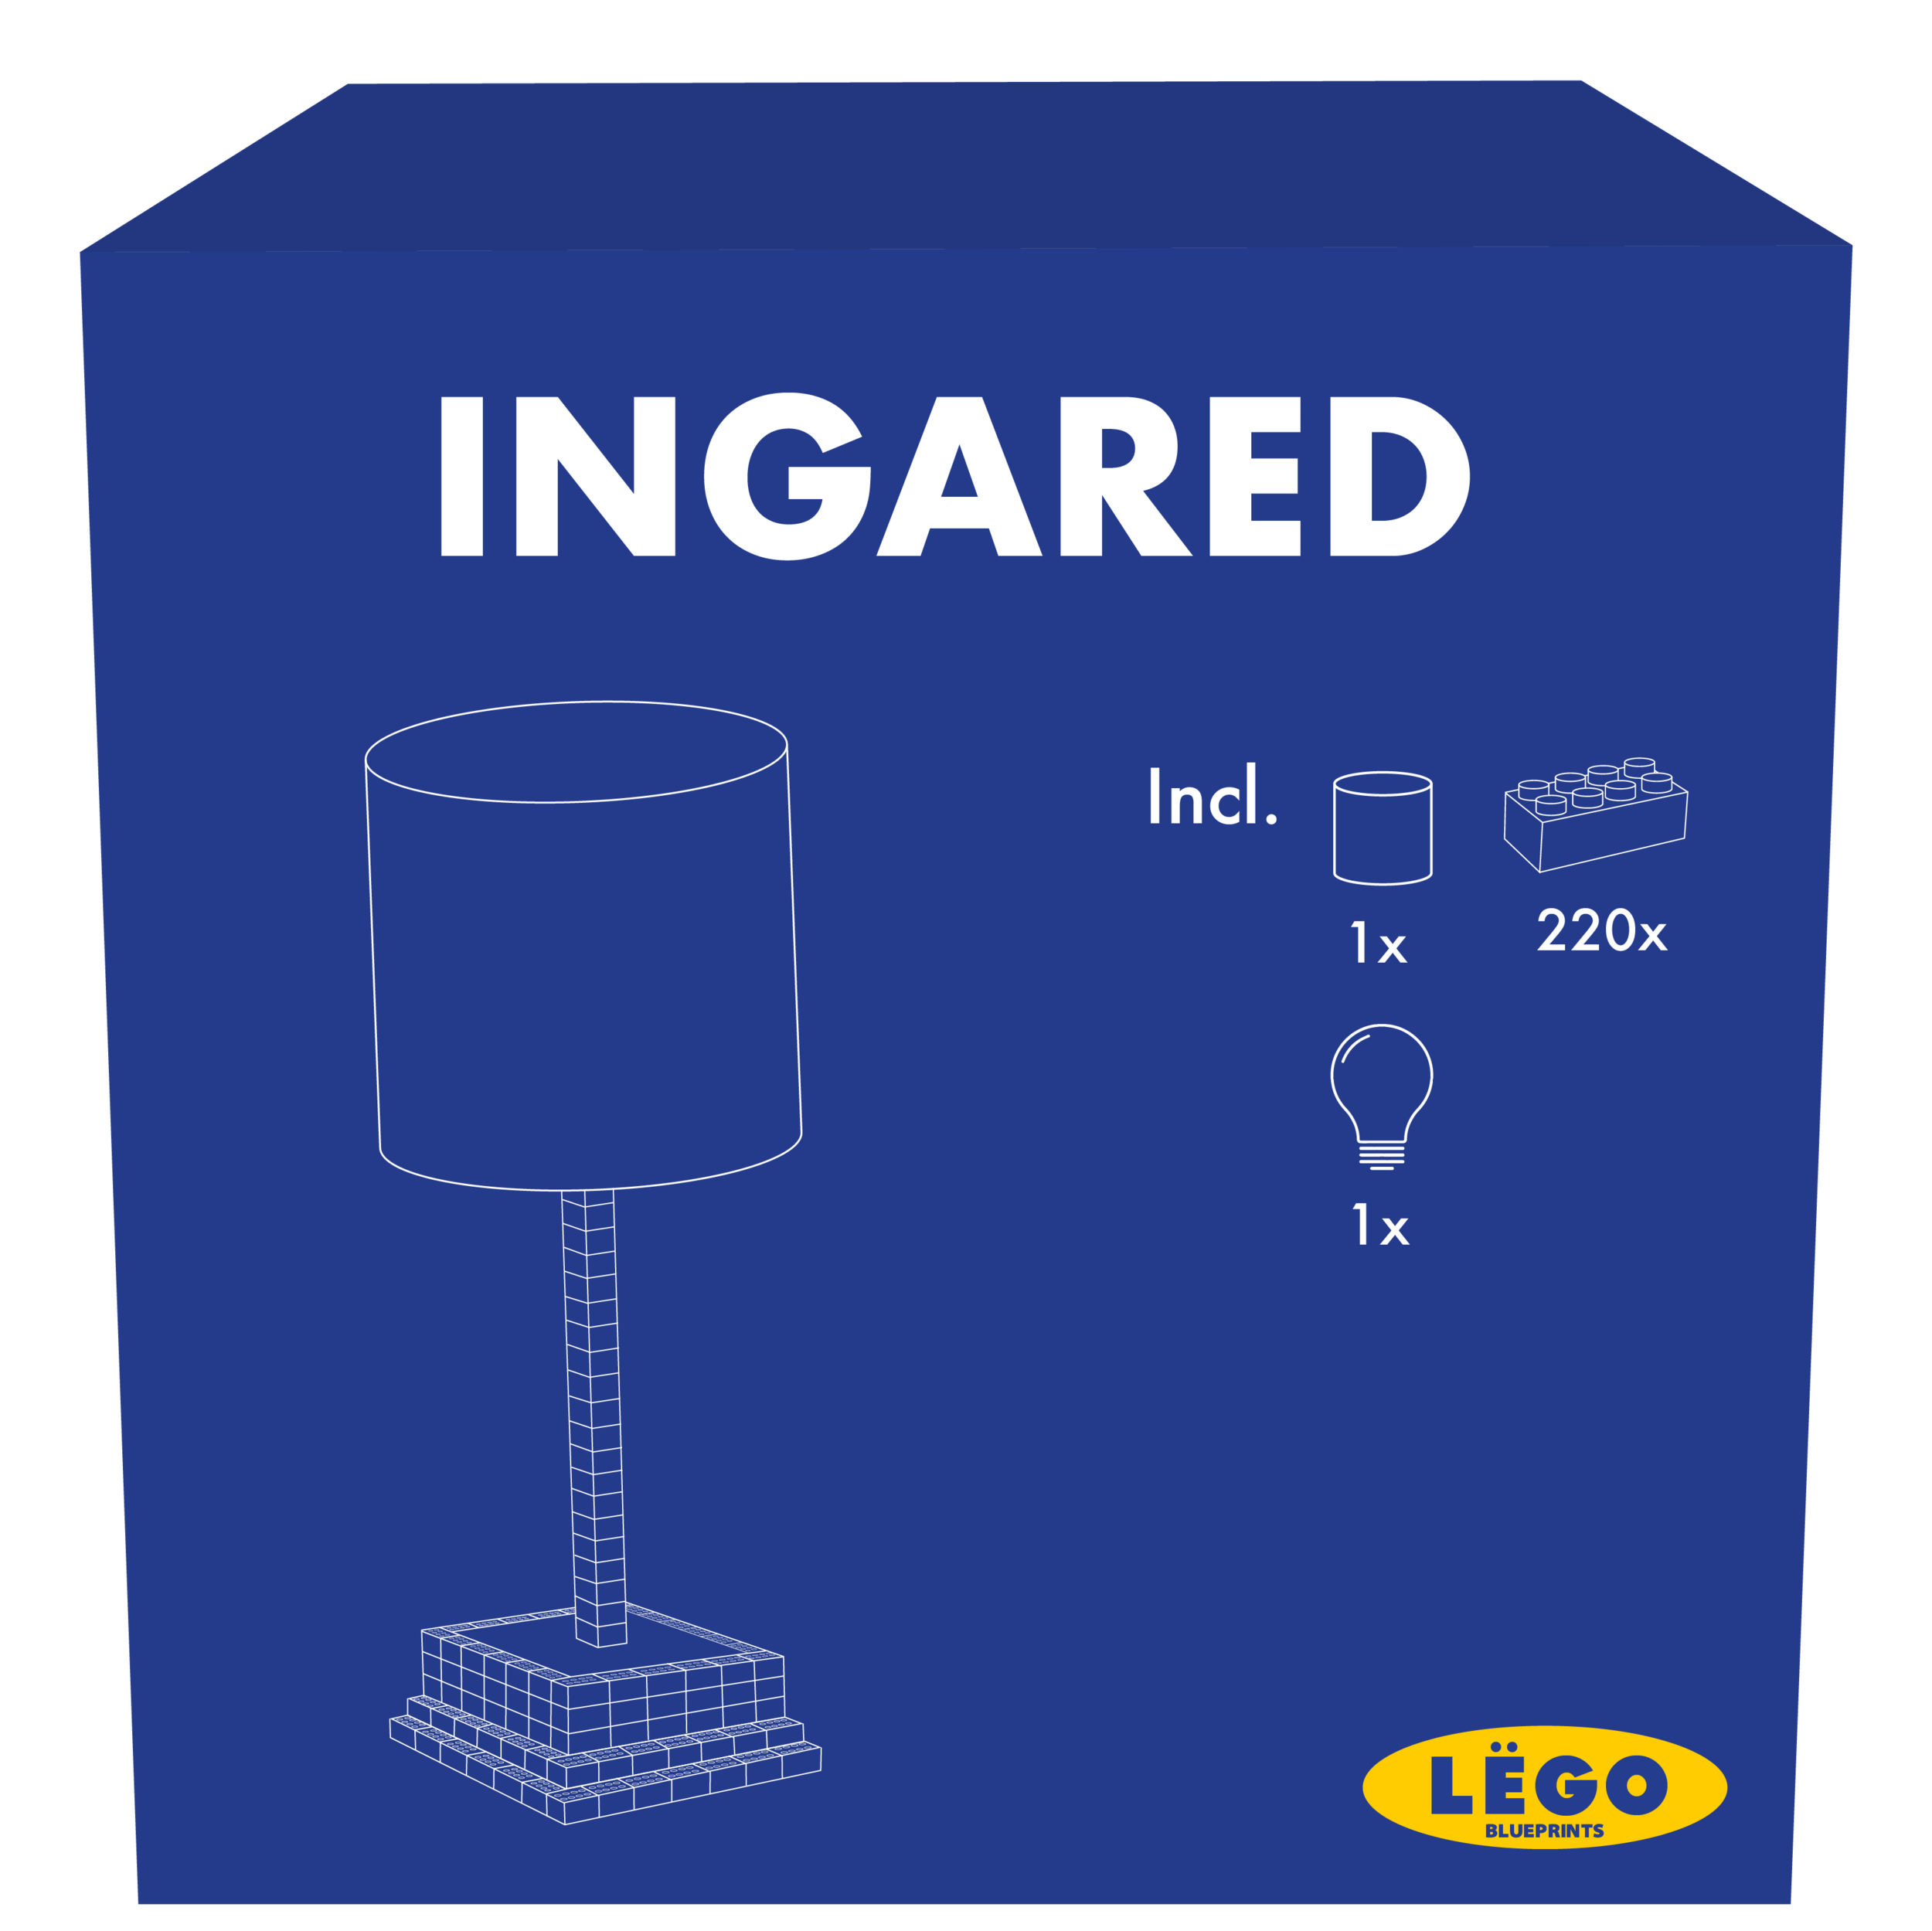 lego blueprint instructions and boxes-02.png